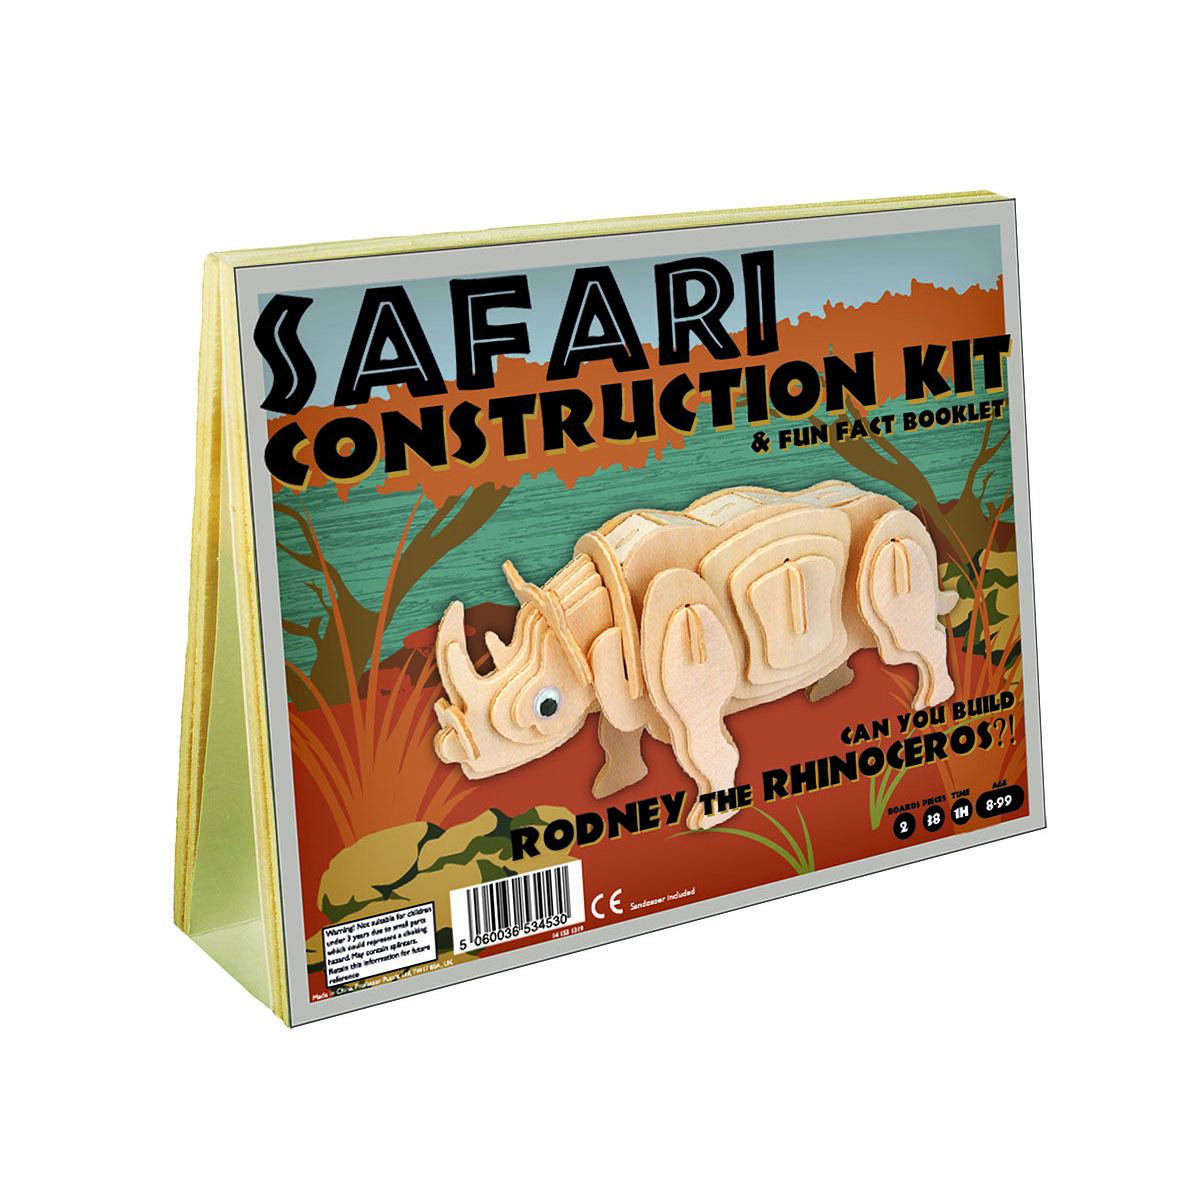 Construction Kits rhino